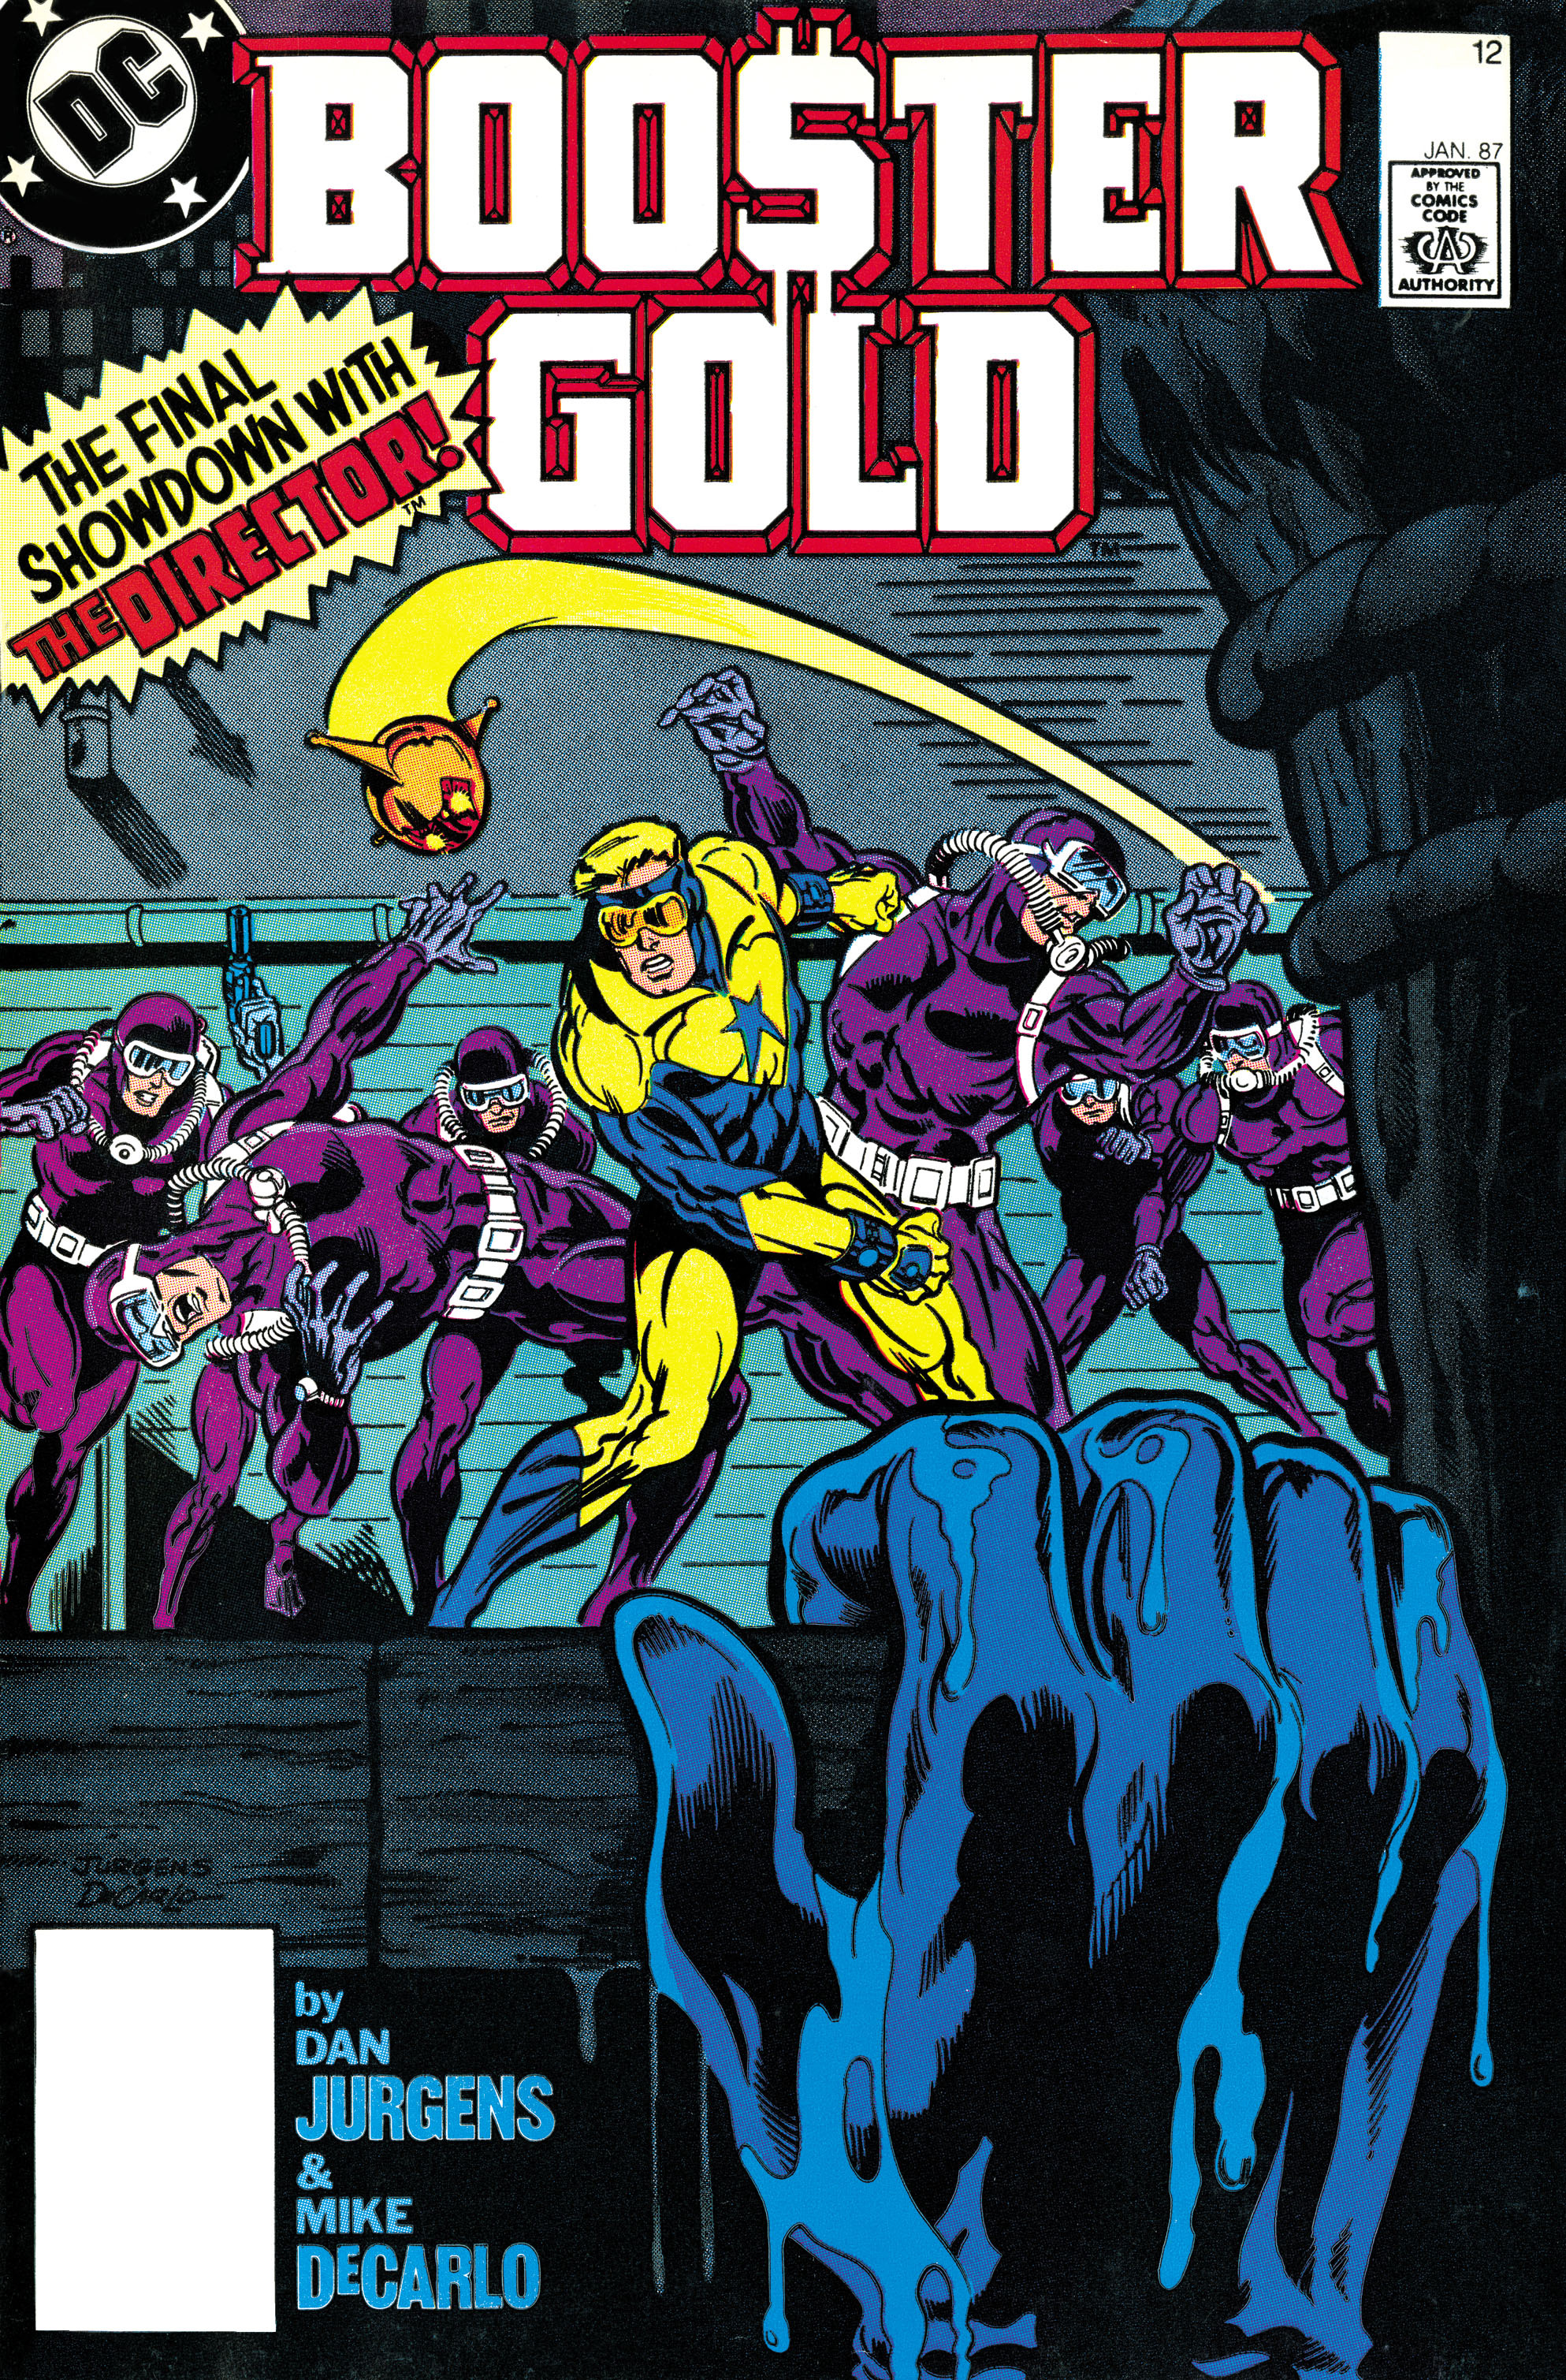 Booster Gold 1986 Issue 12